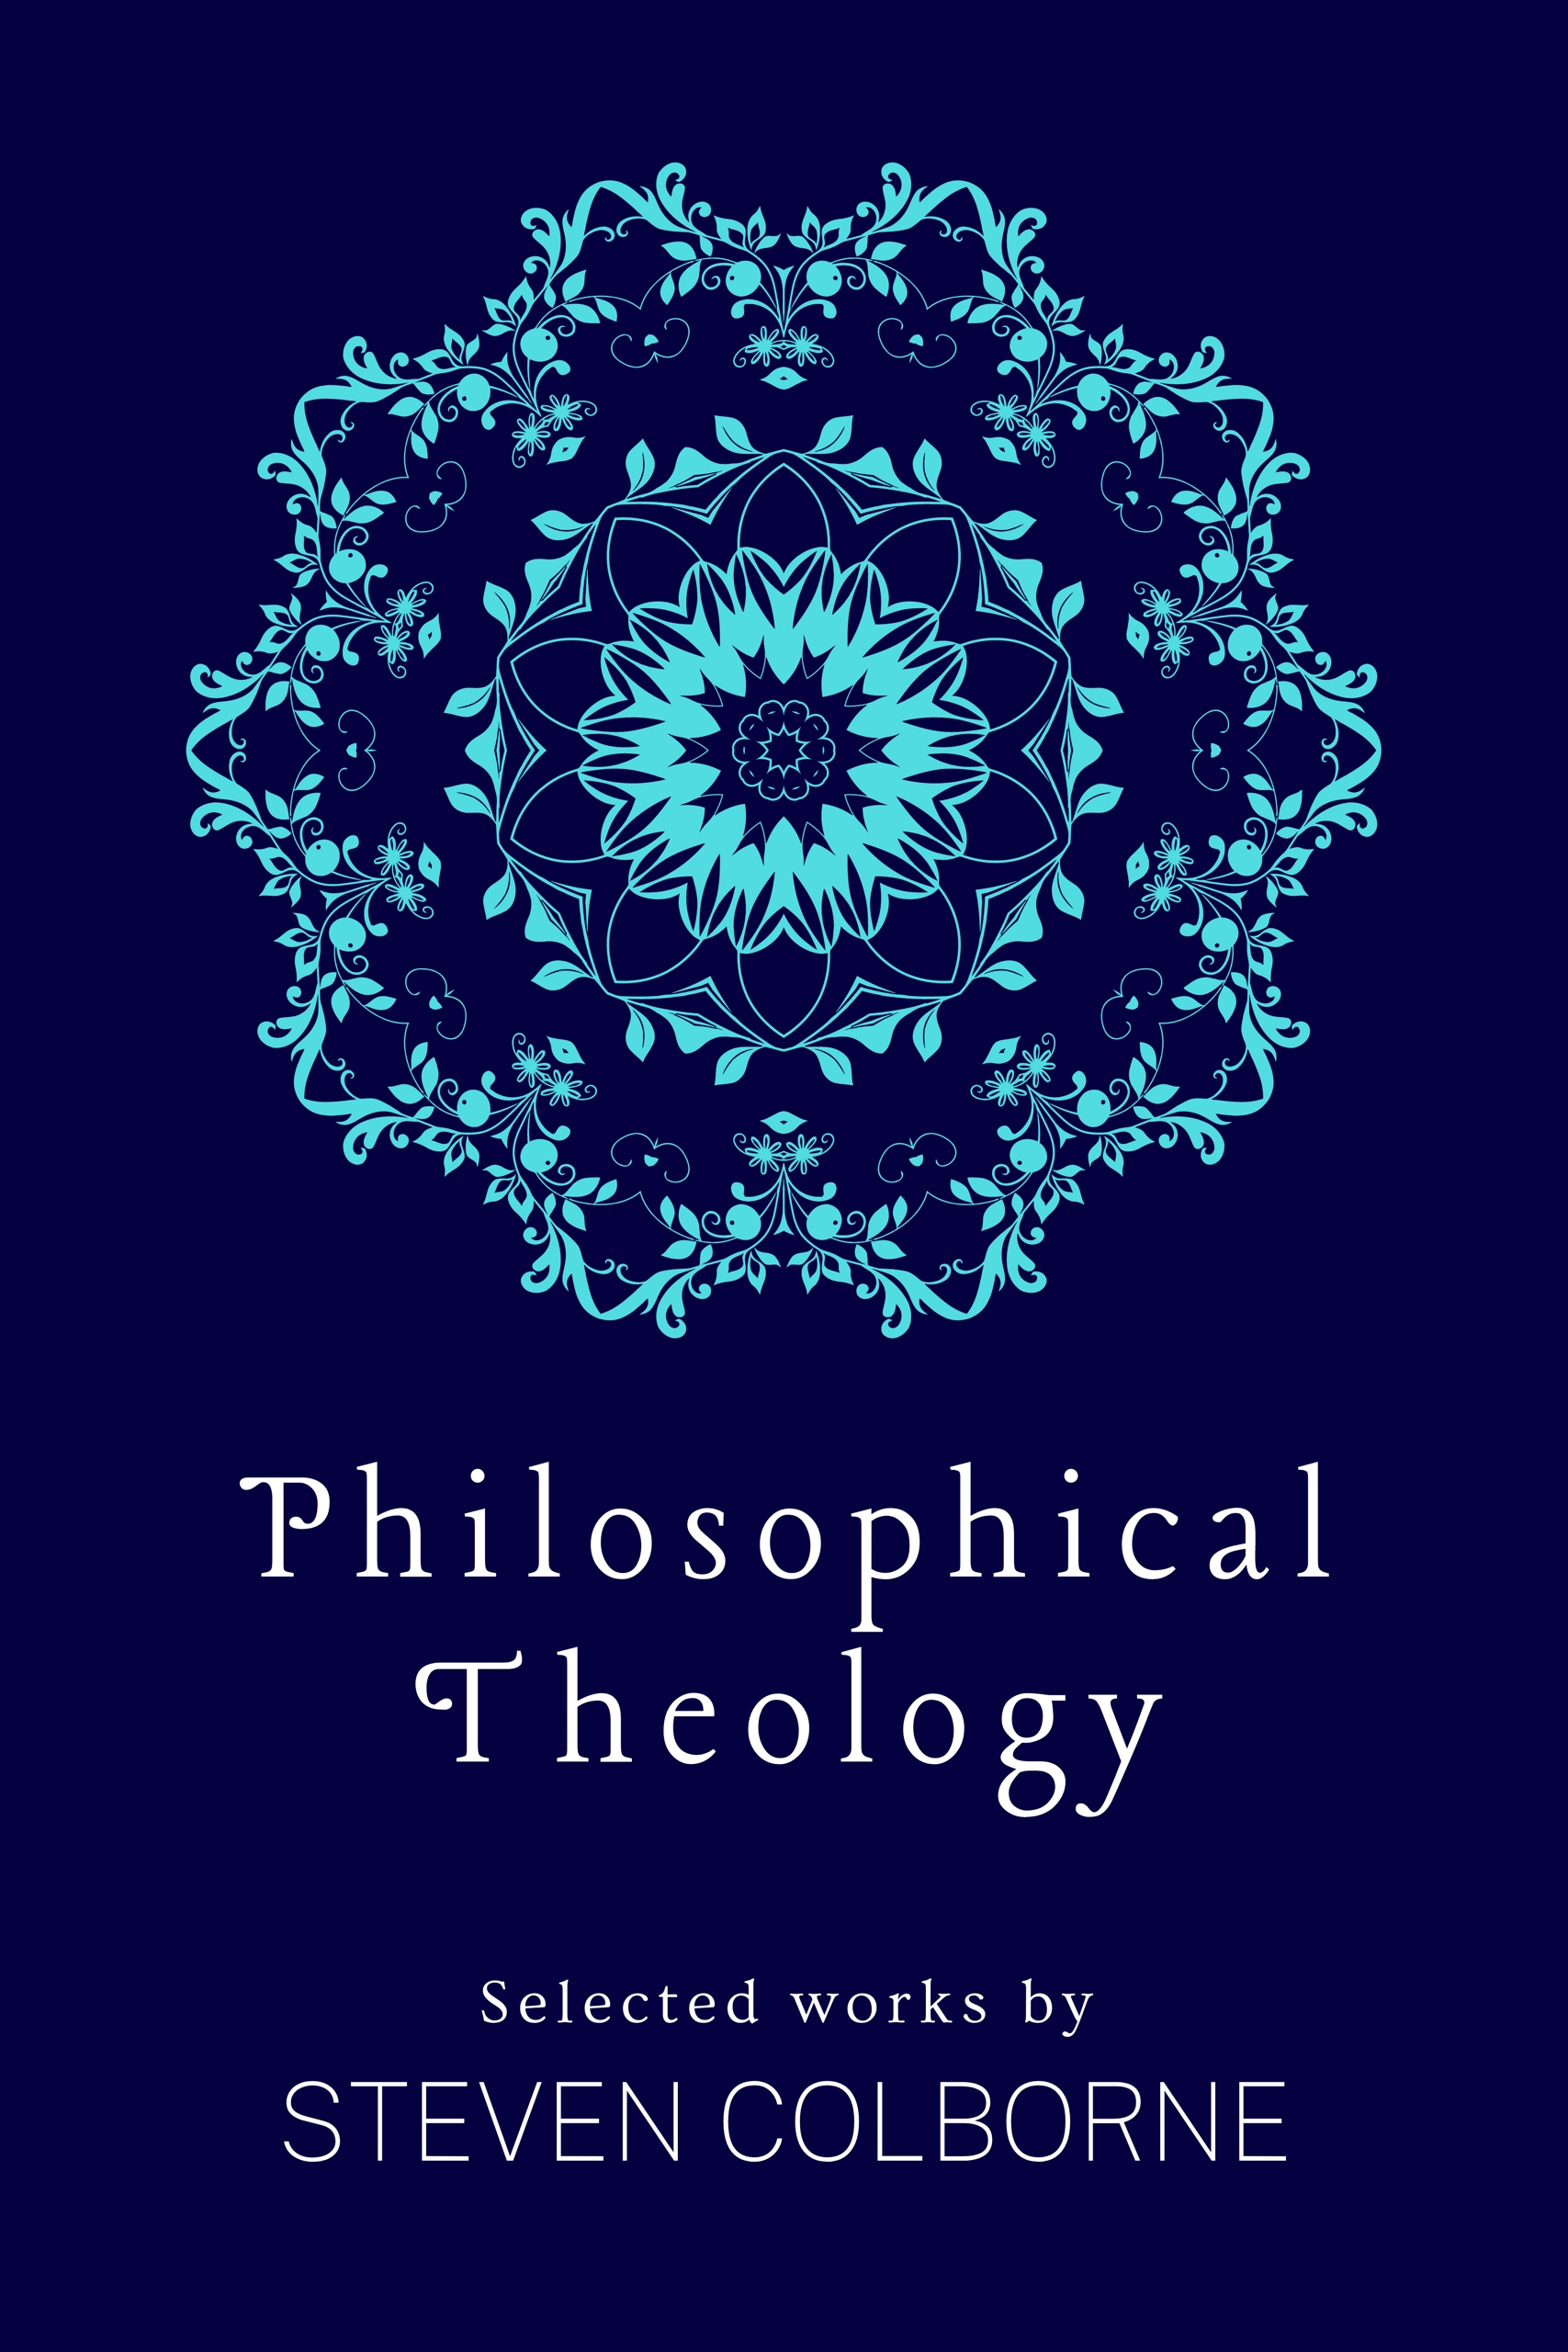 Philosophical Theology compilation by Steven Colborne book cover